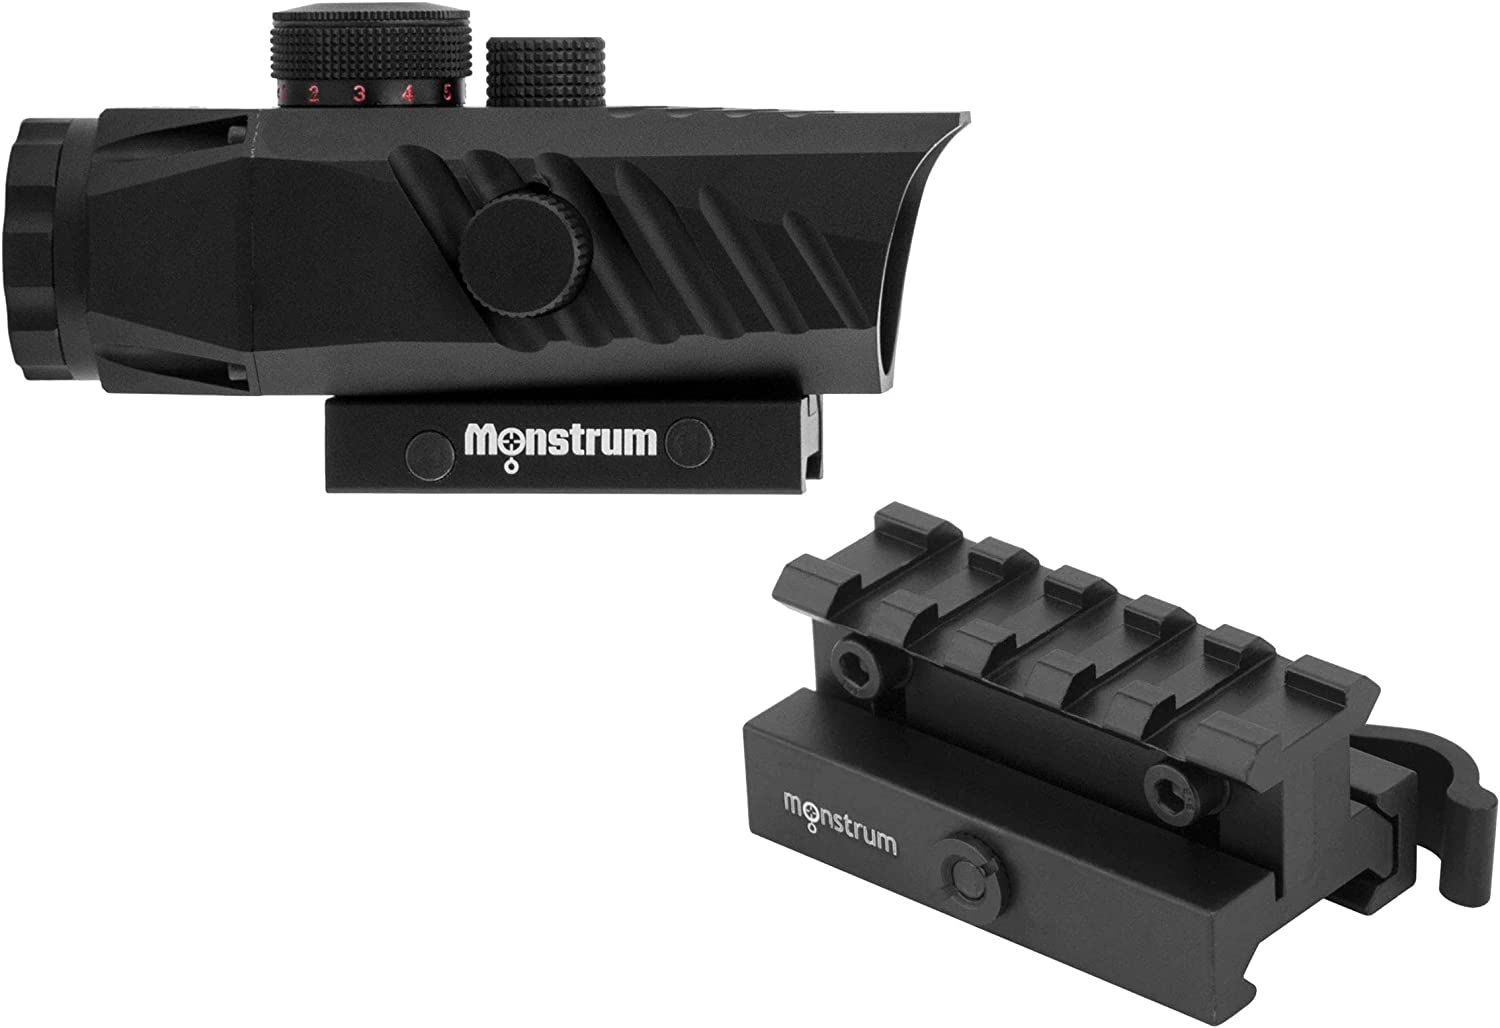 Monstrum P330 Marksman 3X Prism Scope | RM5-AH Adjustable Height Riser Mount with Quick Release | Bundle